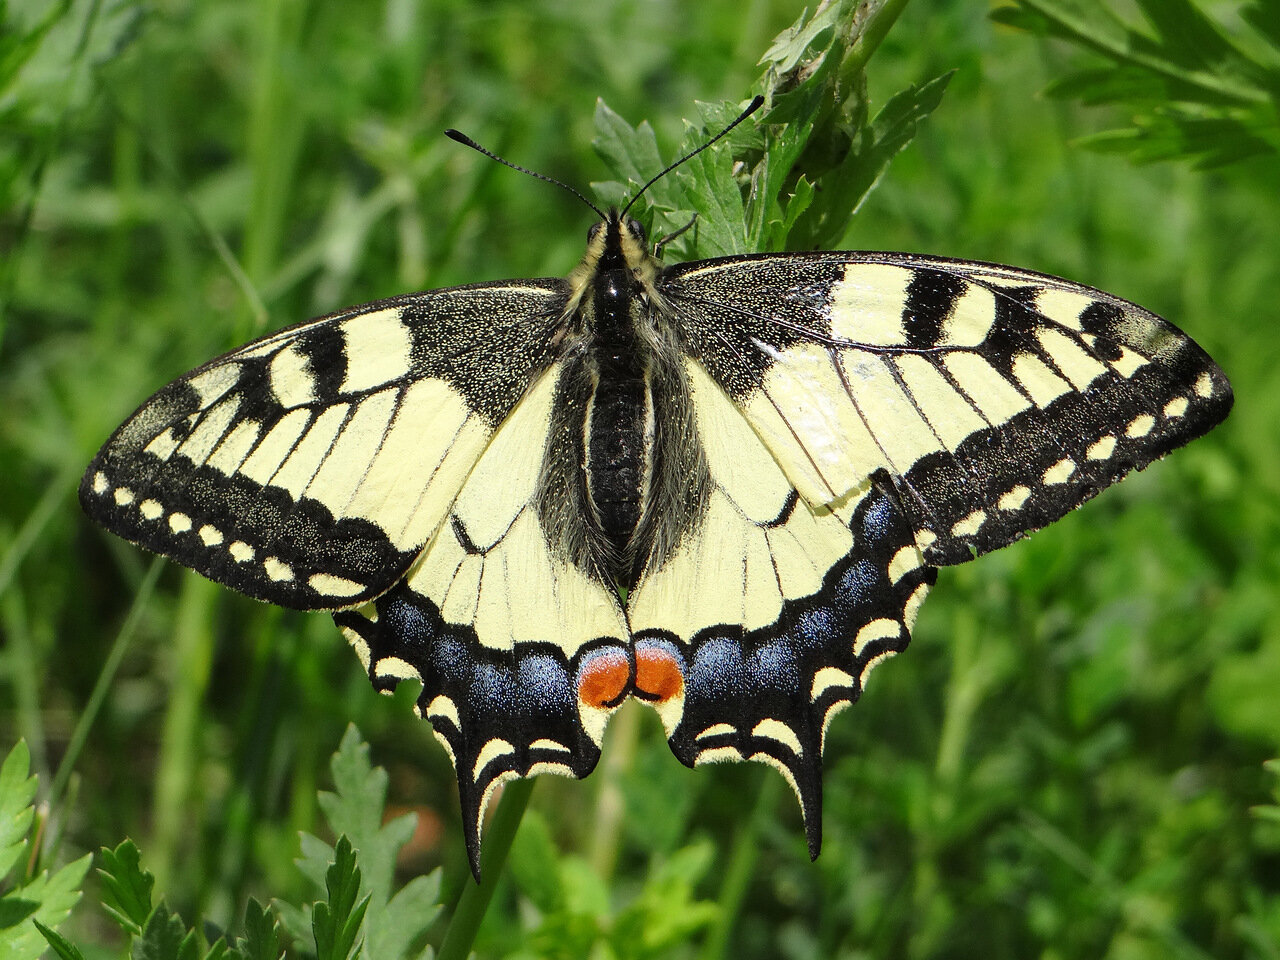 Махаон (Papilio machaon) Автор фото: Привалова Марина